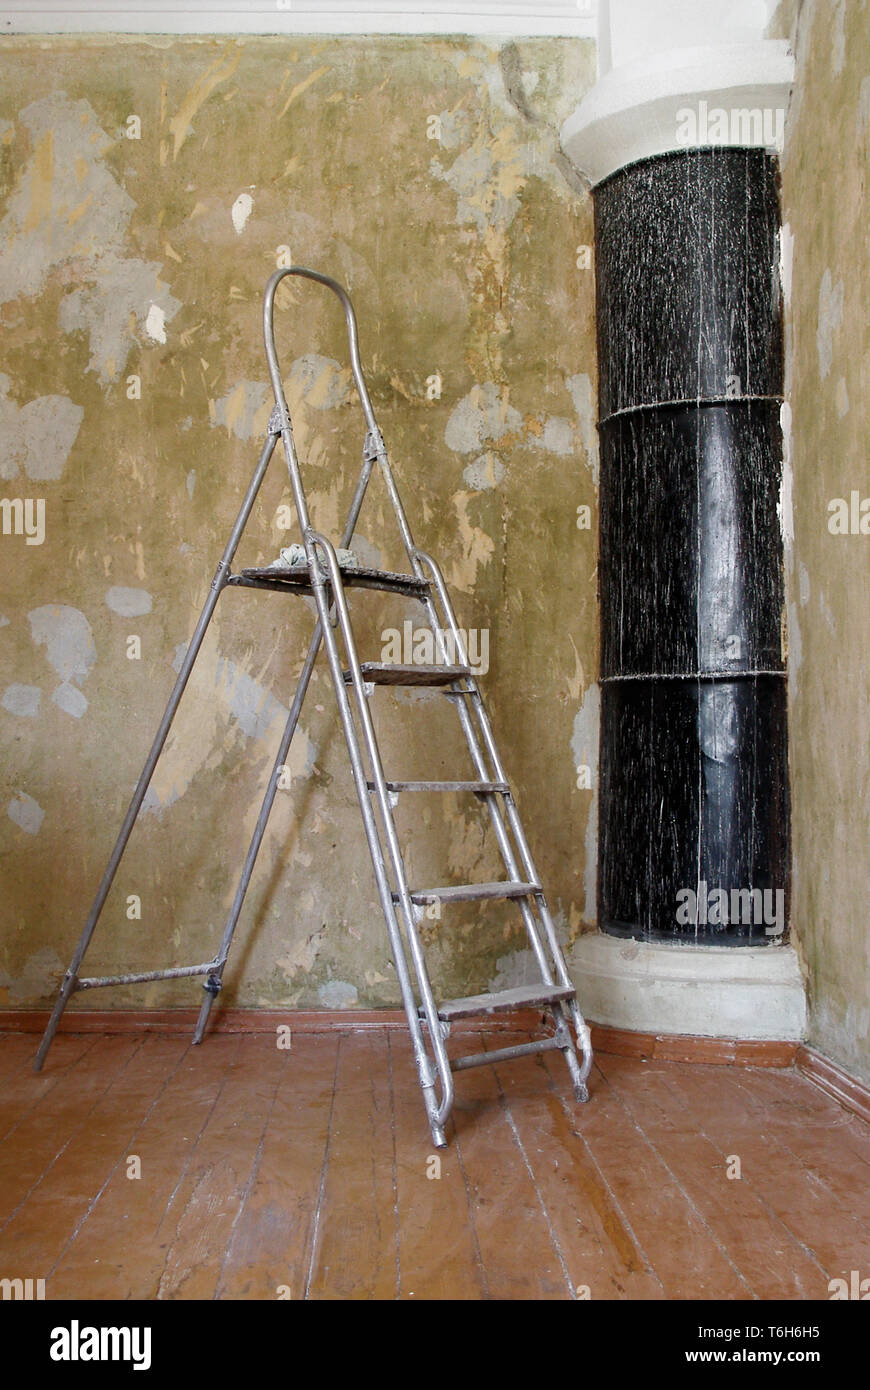 a ladder in the room during the repair with shabby wall and black stove in the corner - Stock Image